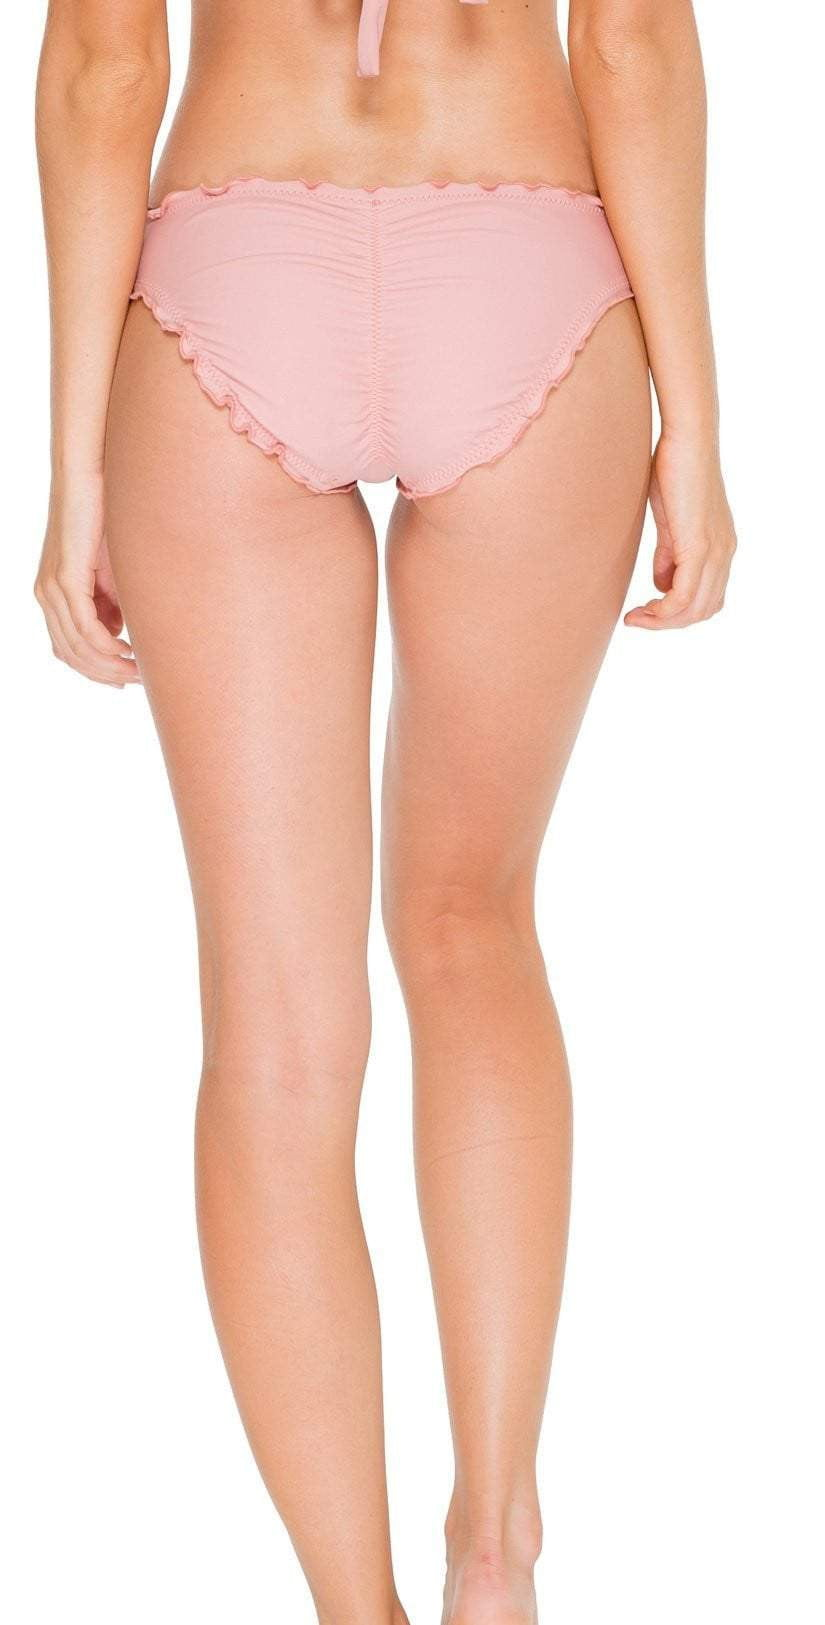 Luli Fama Cosita Buena Full Bottom in Rosa L176521-424: